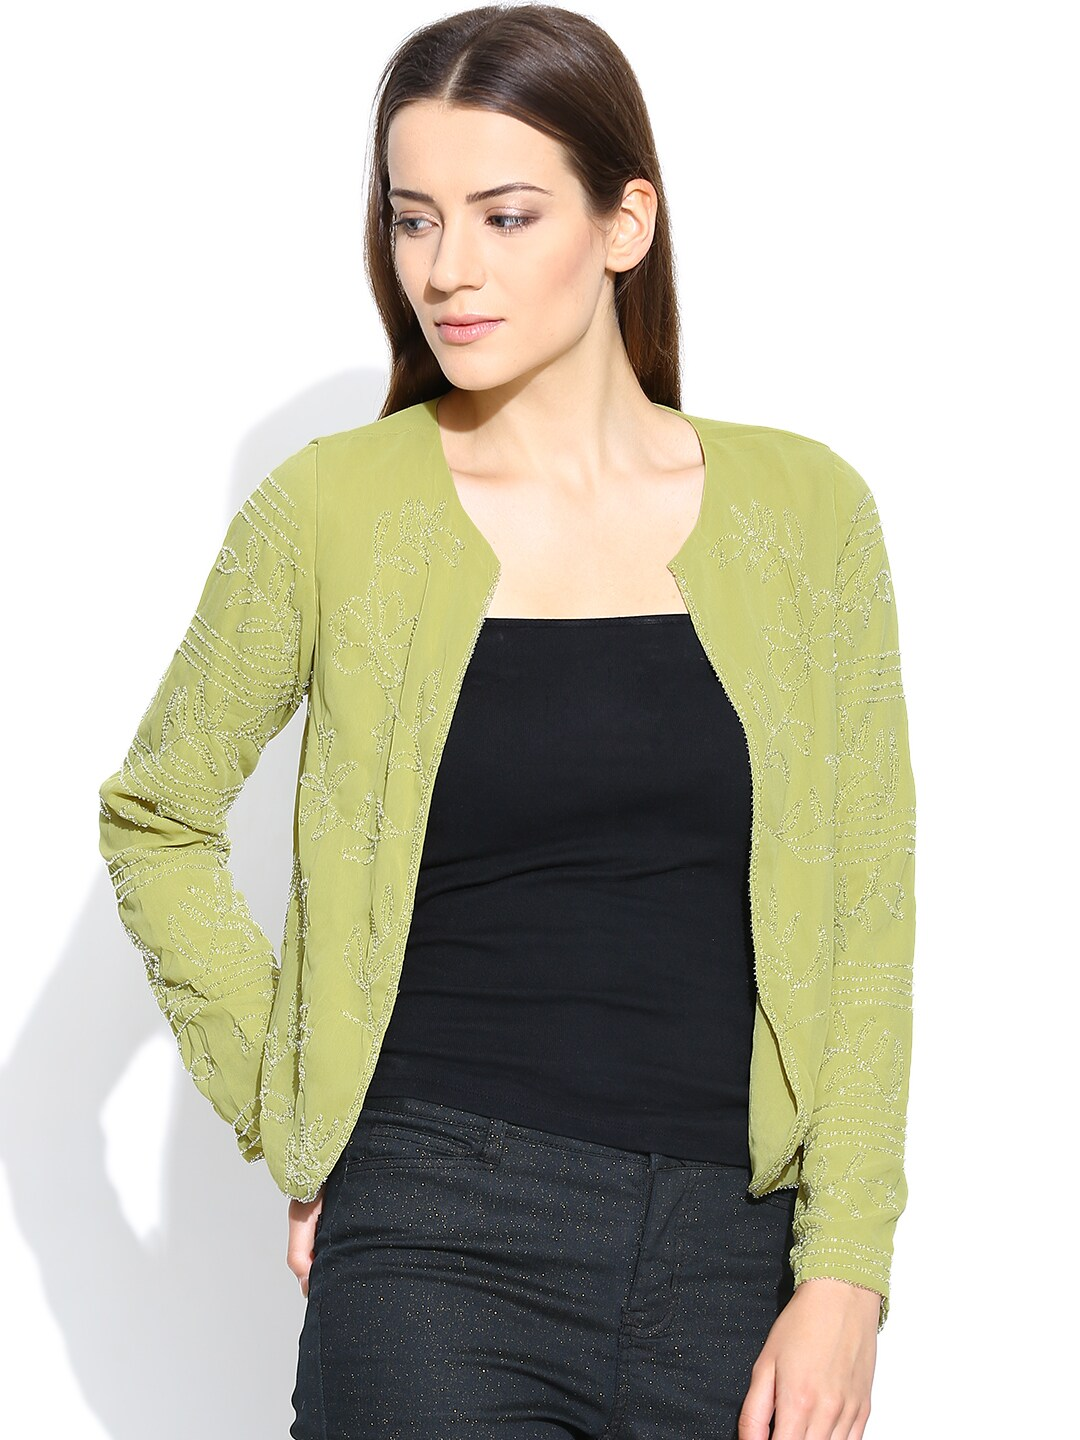 Vero Moda Green Beaded Shrug